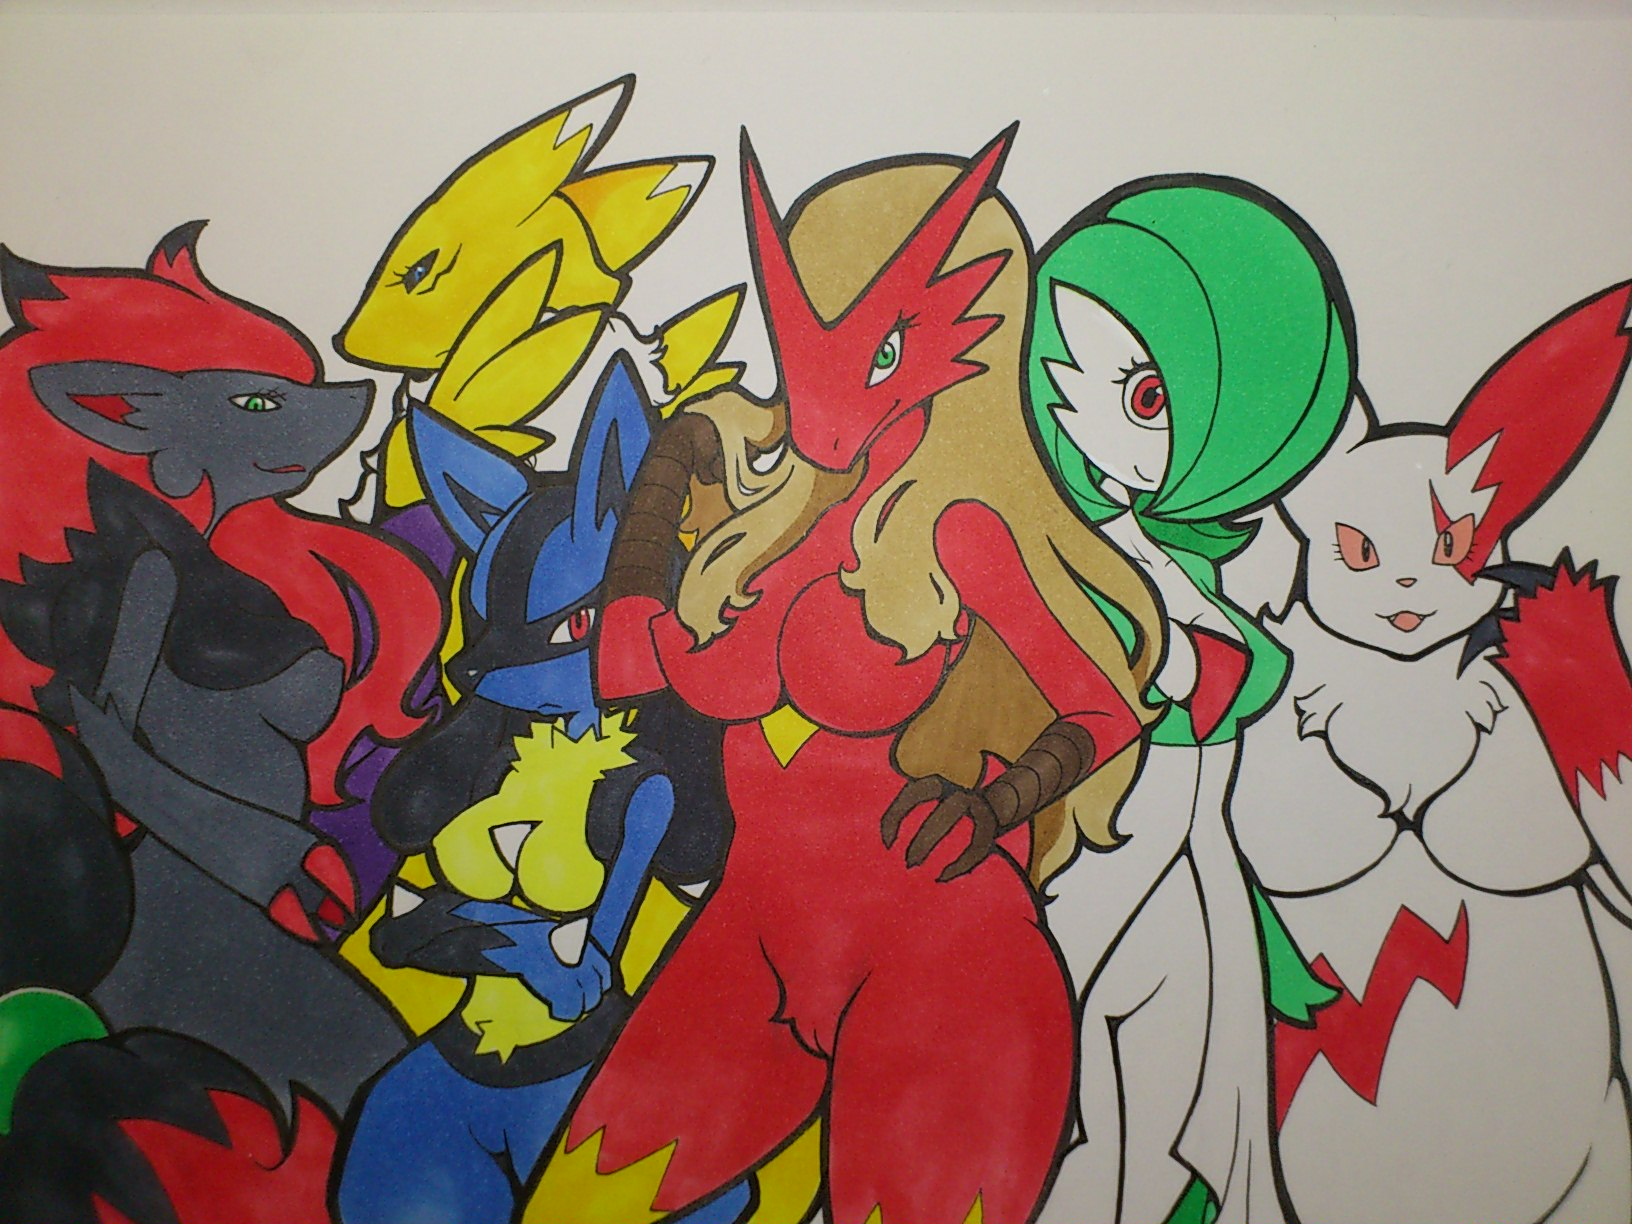 e621 4:3 anthro anthrofied avian bird black_sclera blaziken blue_eyes blue_fur breasts canine claws crossed_arms crossover digimon featureless_breasts female fur gardevoir green_eyes group hair hi_res humanoid kewon lucario mammal nintendo pokémon pokémon_(species) pokémorph pussy red_eyes renamon slightly_chubby traditional_media_(artwork) video_games white_fur wide_hips yellow_fur zangoose zoroark